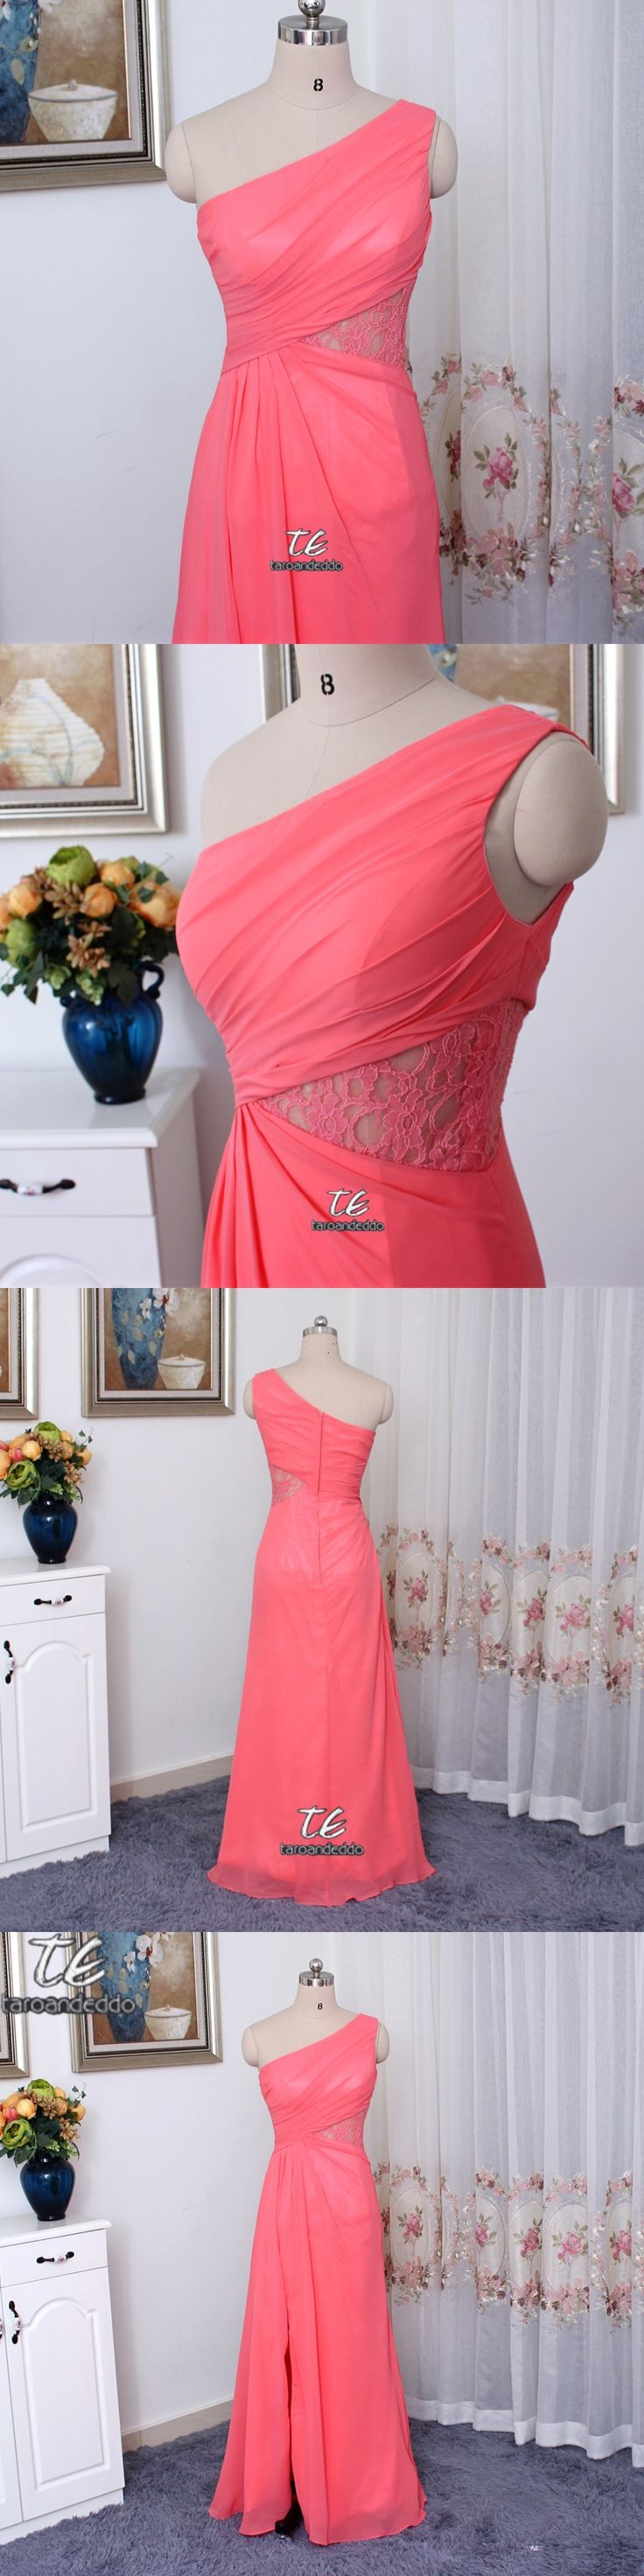 One-Shoulder Chiffon Side Slit Coral Bridesmaid Dress with Lace Inset F19419 Wedding Party Dress Formal Dresses